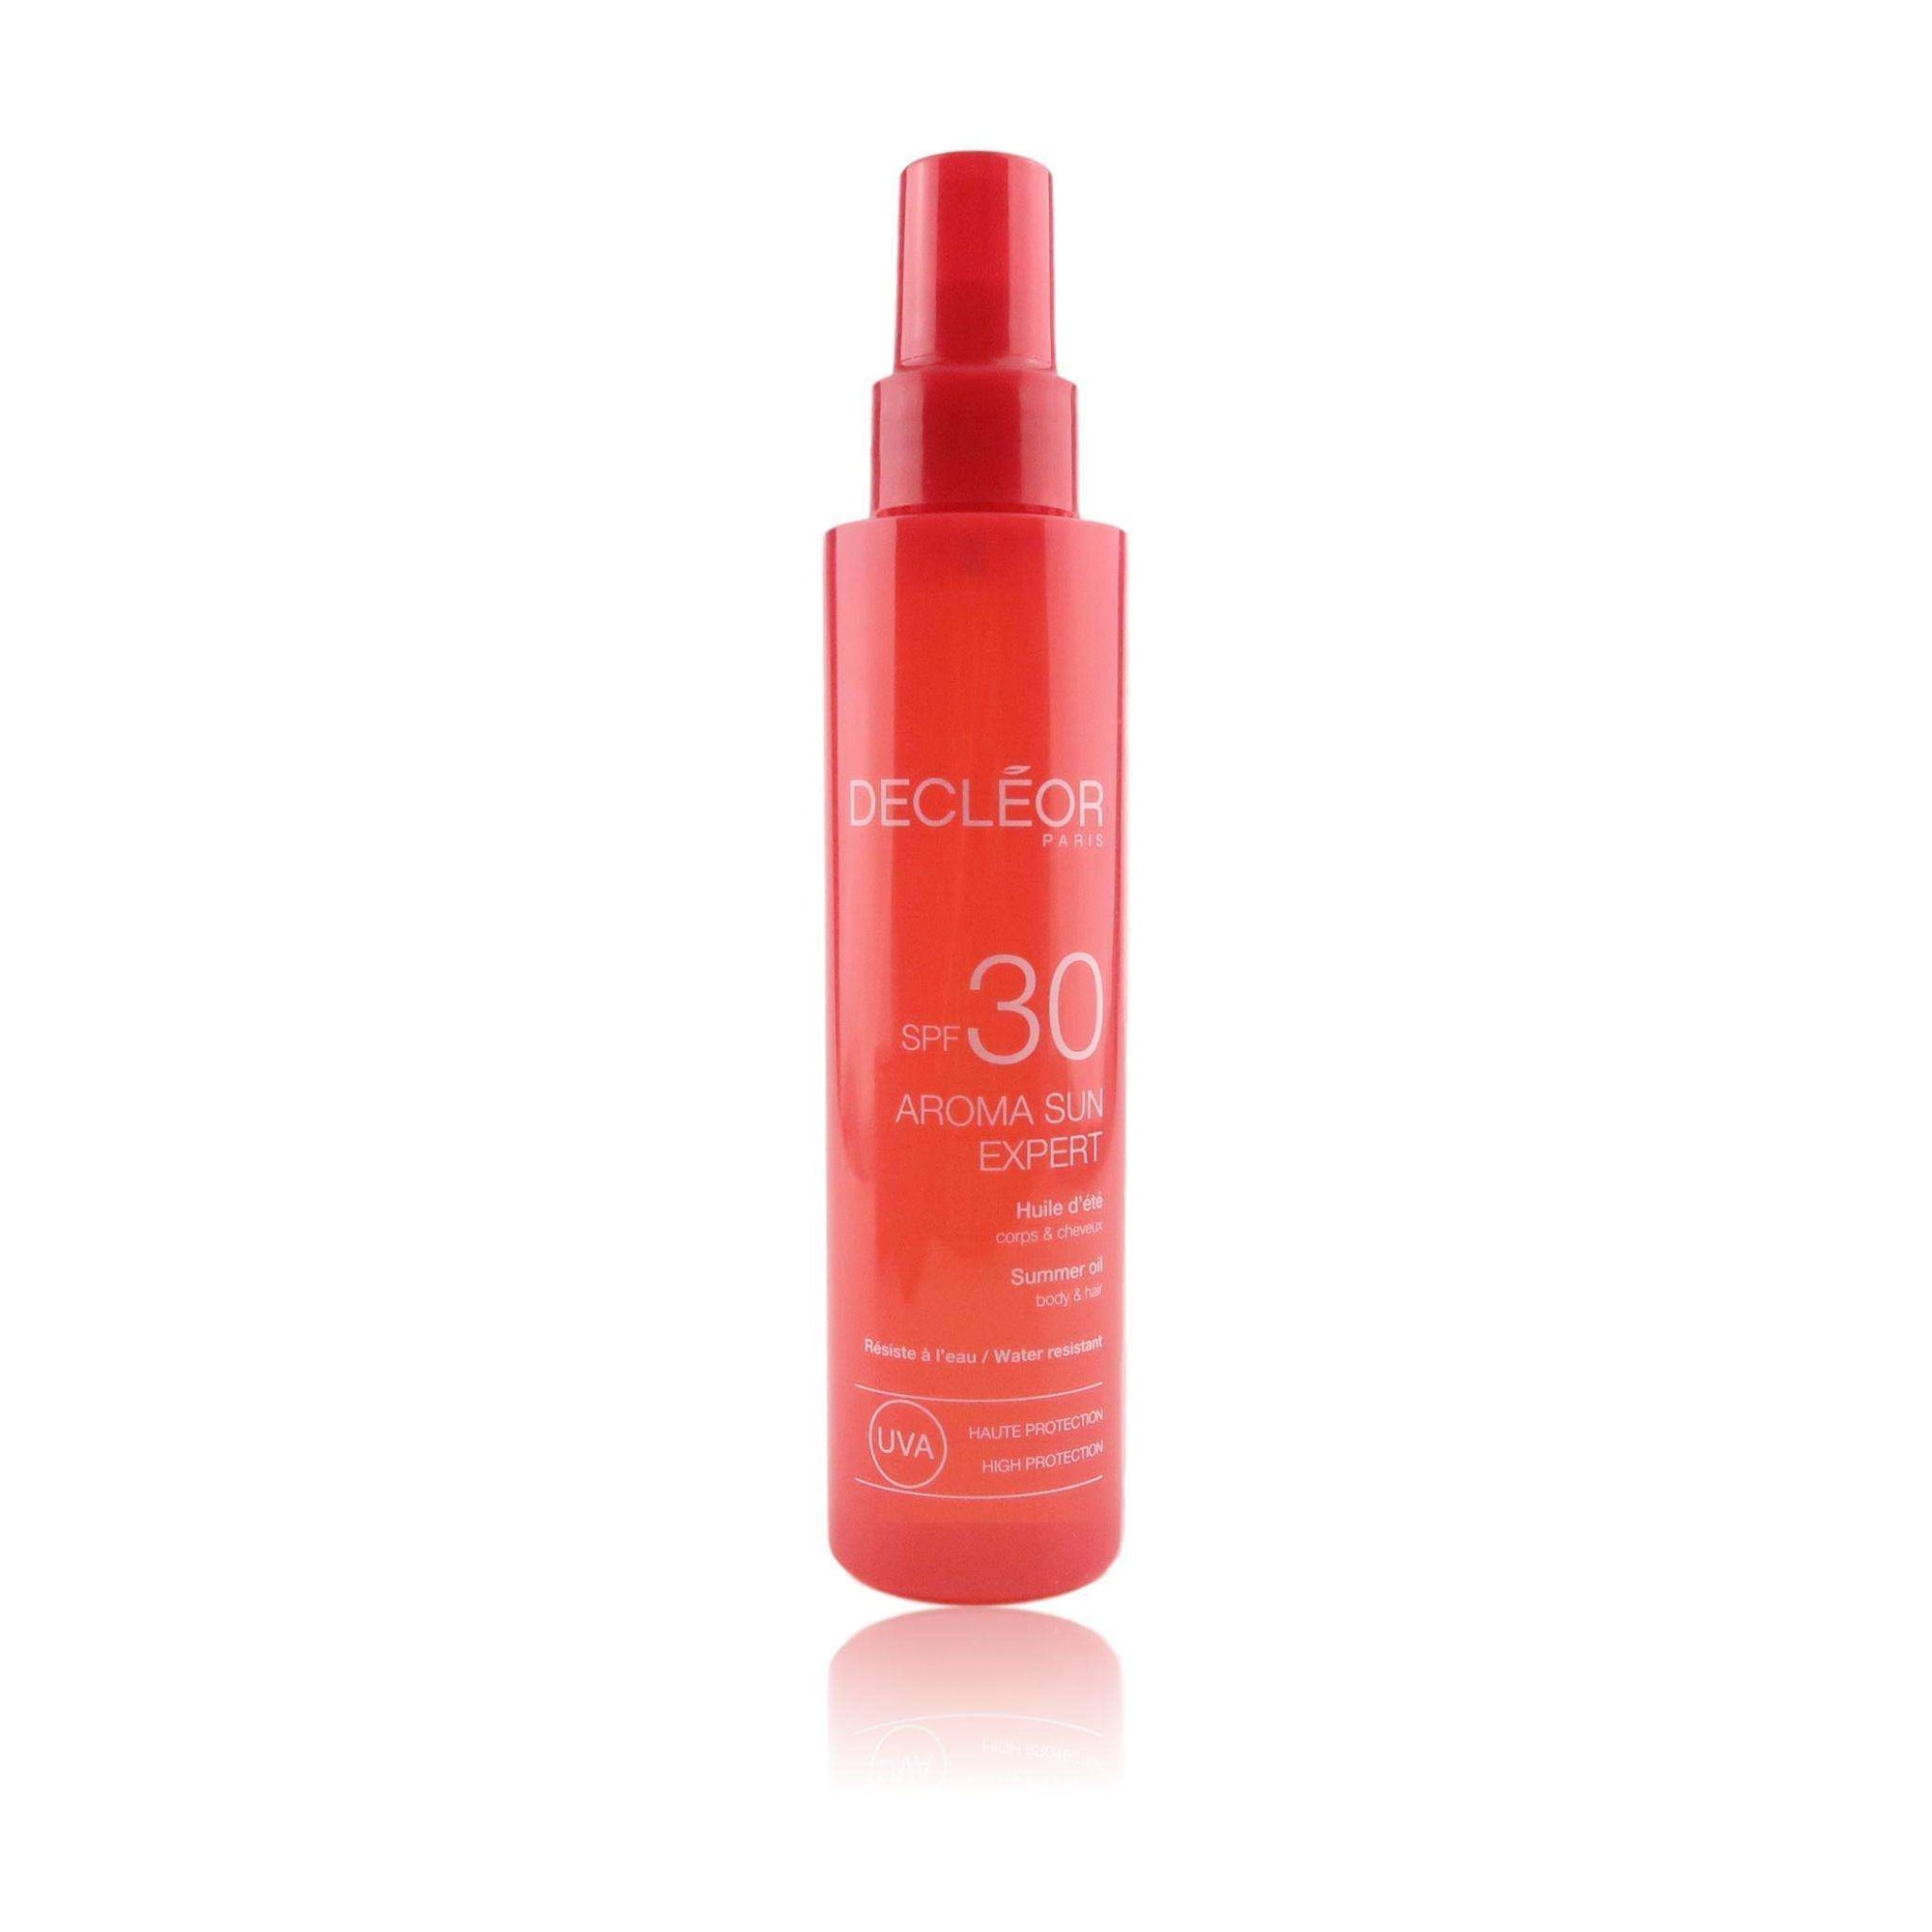 Decleor Aroma Sun Expert Summer Oil SPF 30 for Body & Hair